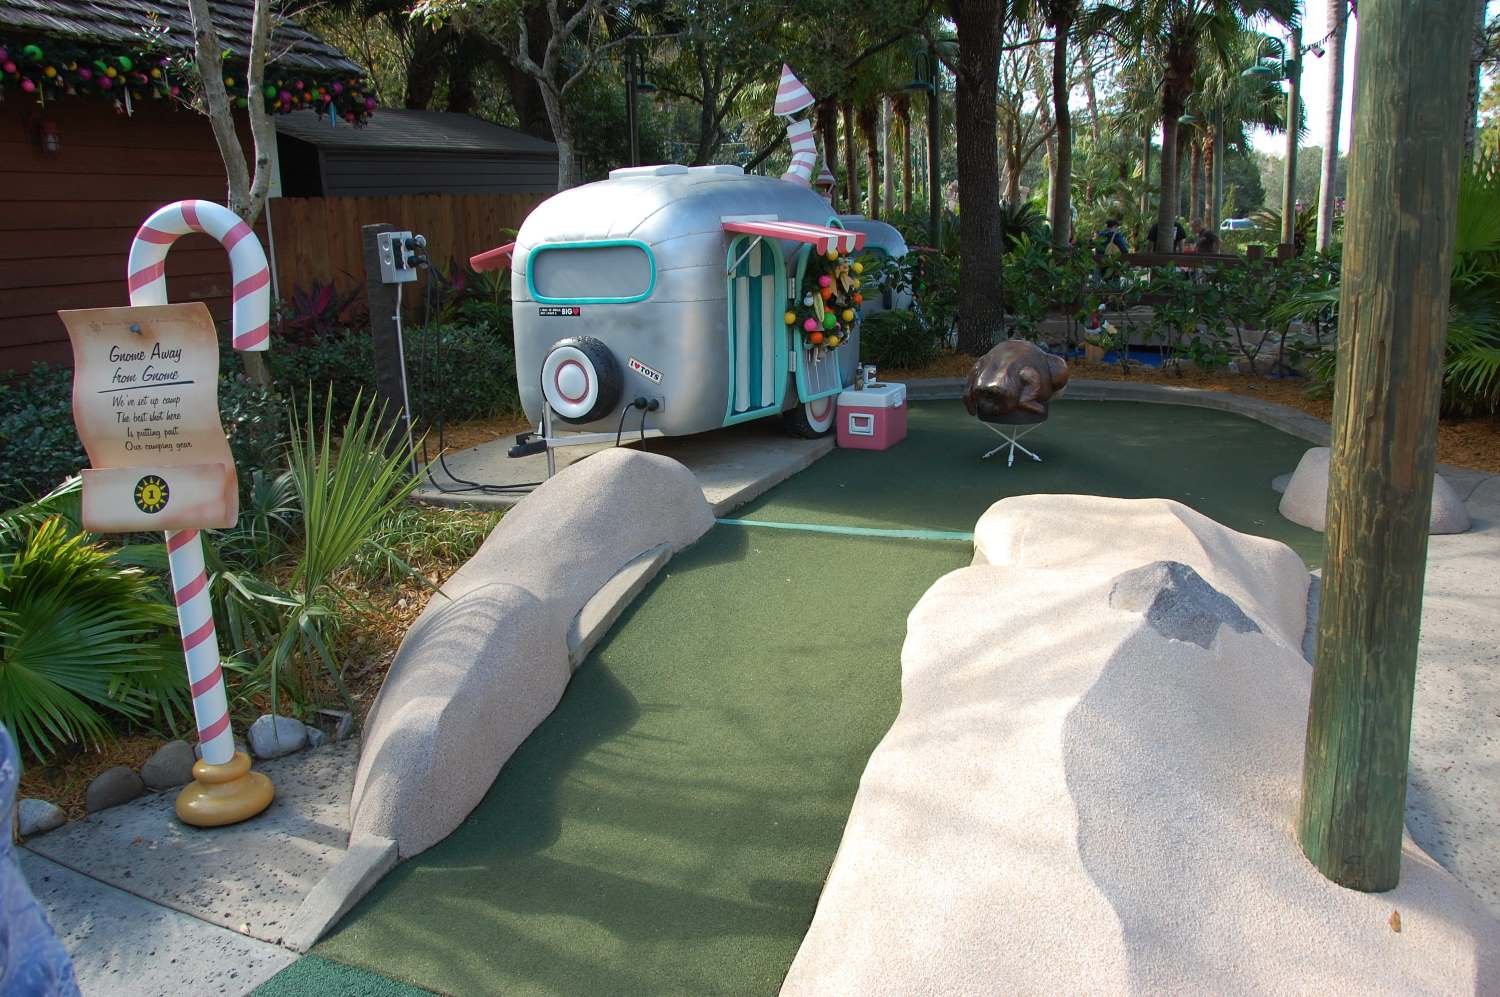 Christmas themed miniature golf course at Disney World in Florida.